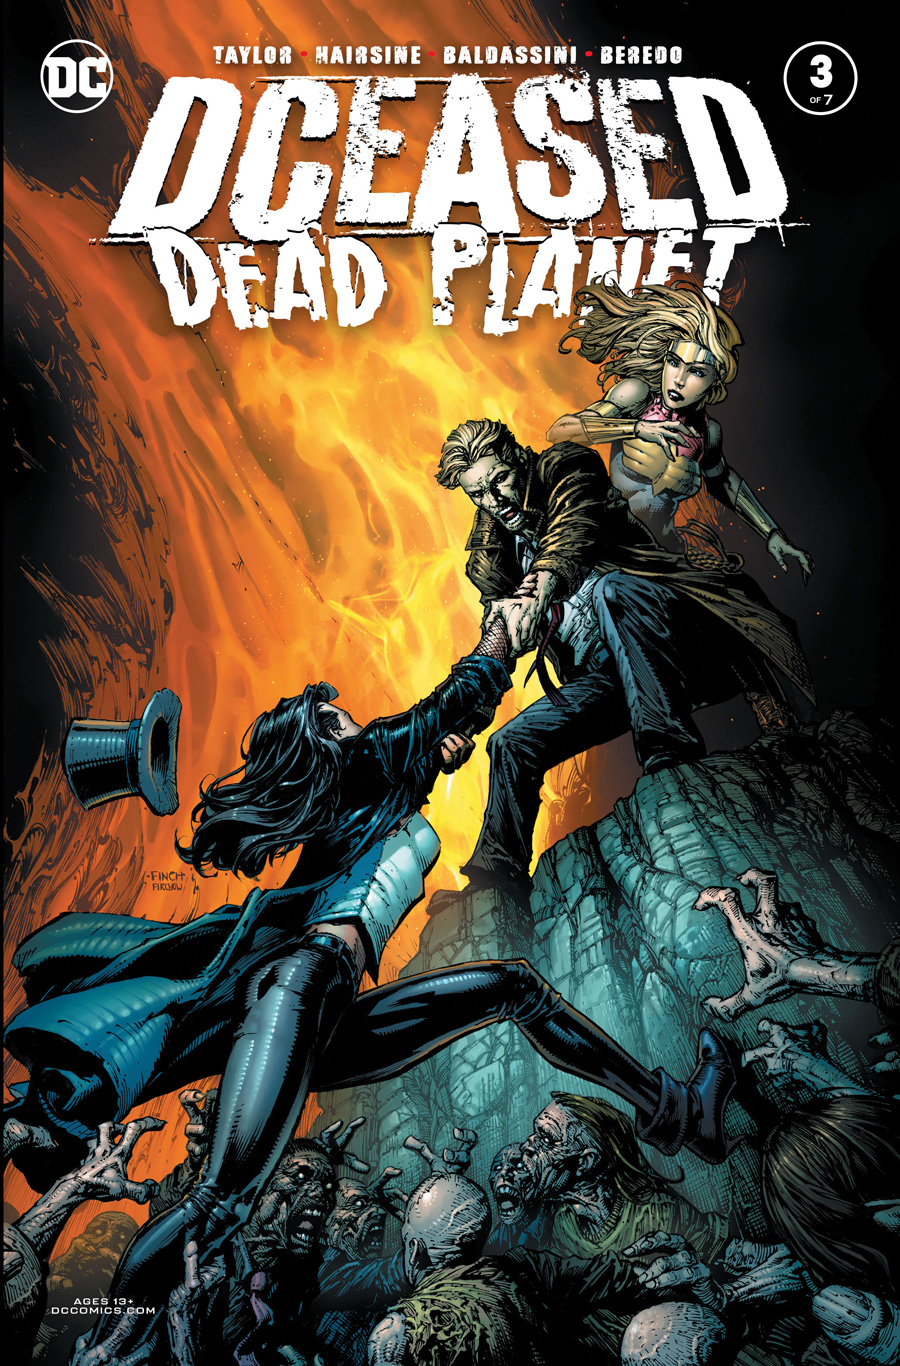 Dceased Dead Planet #3 (Of 7) Cover A David Finch